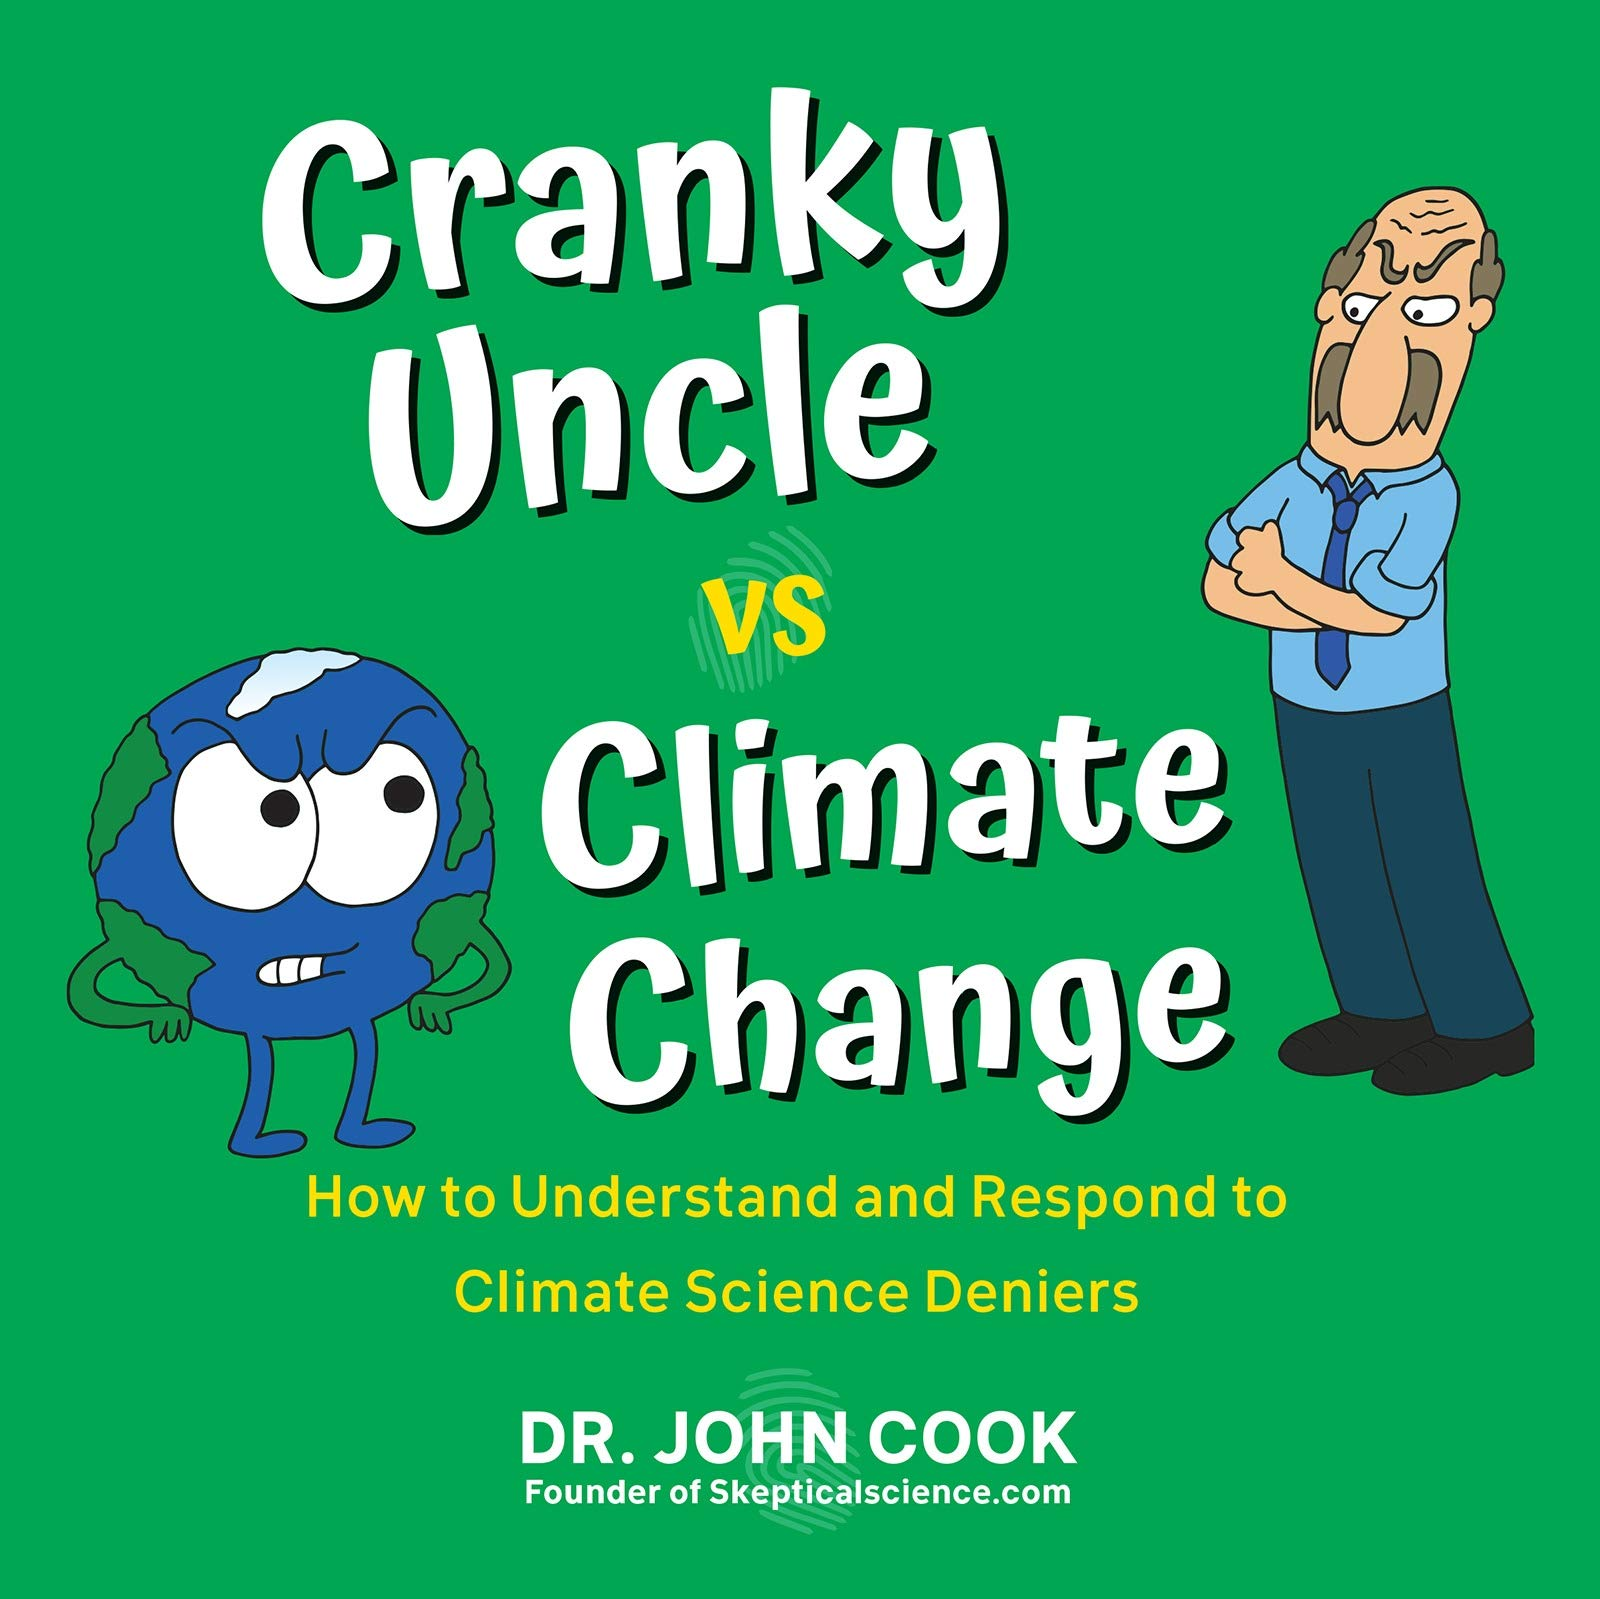 Image OfCranky Uncle Vs. Climate Change: How To Understand And Respond To Climate Science Deniers